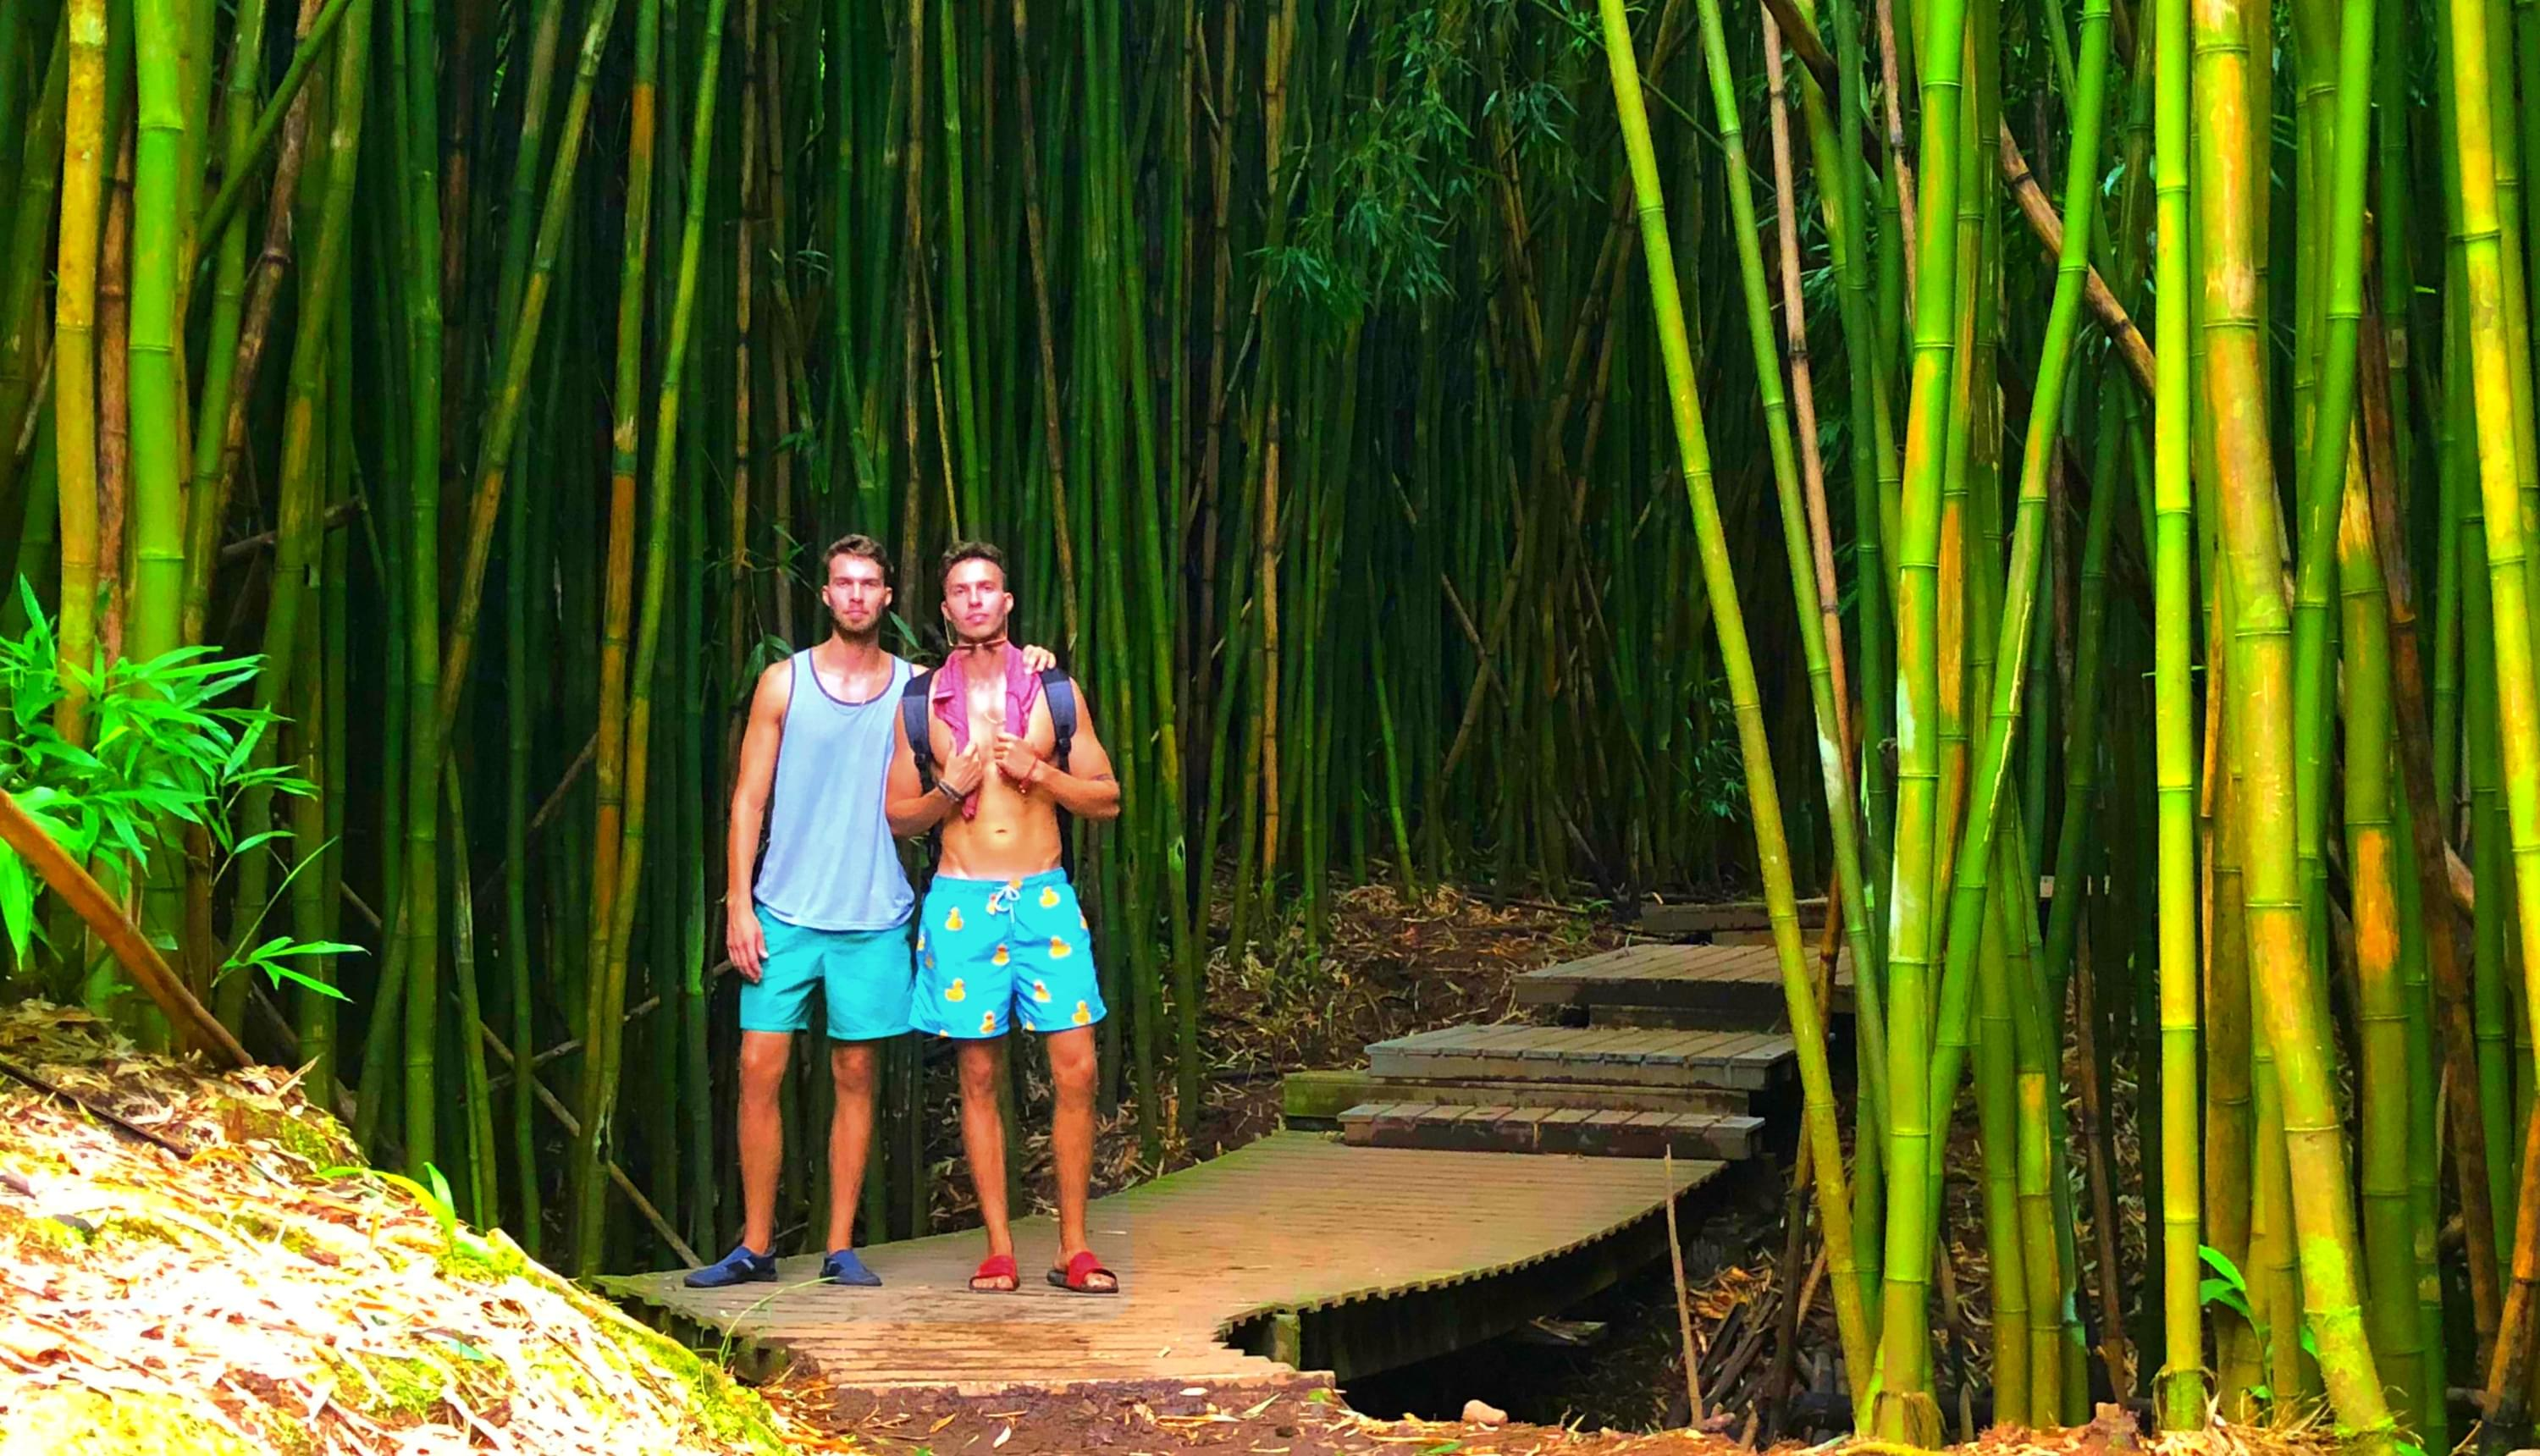 maui bamboo forest - Mikkelsen Twins - - % category